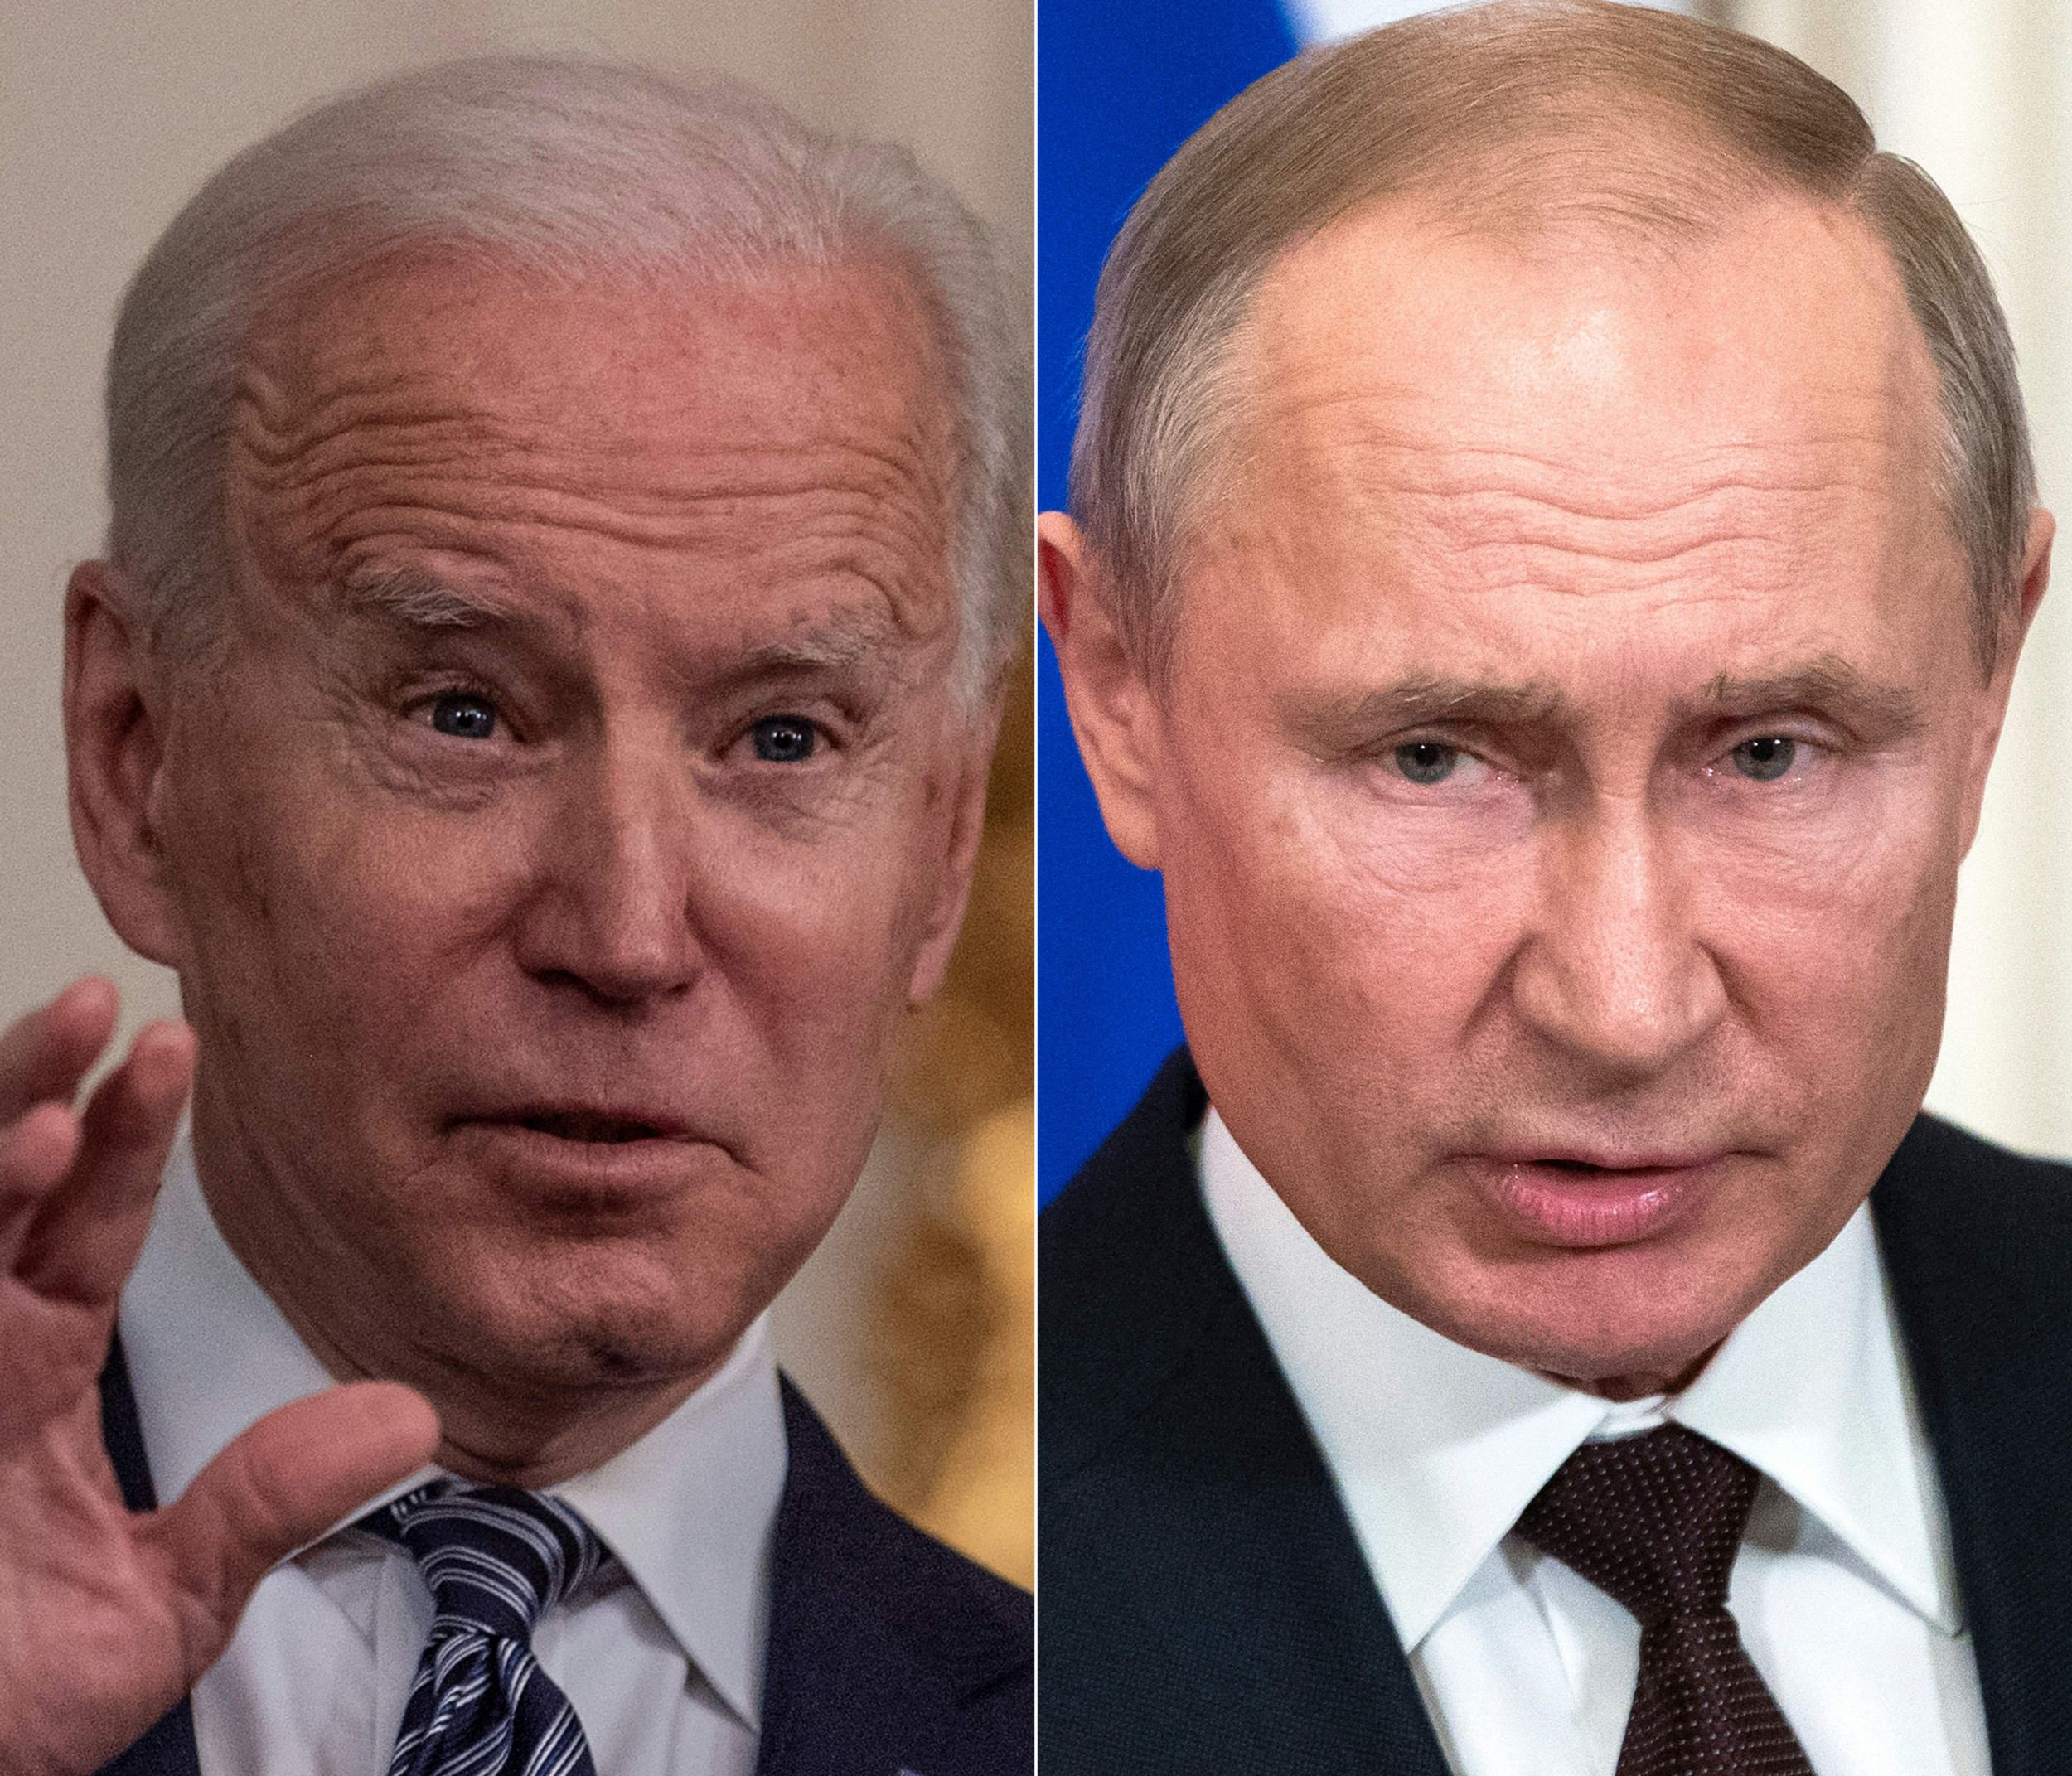 Biden to Talk to Putin 'At Some Point' After Russian Leader Challenges Him to Live Talks